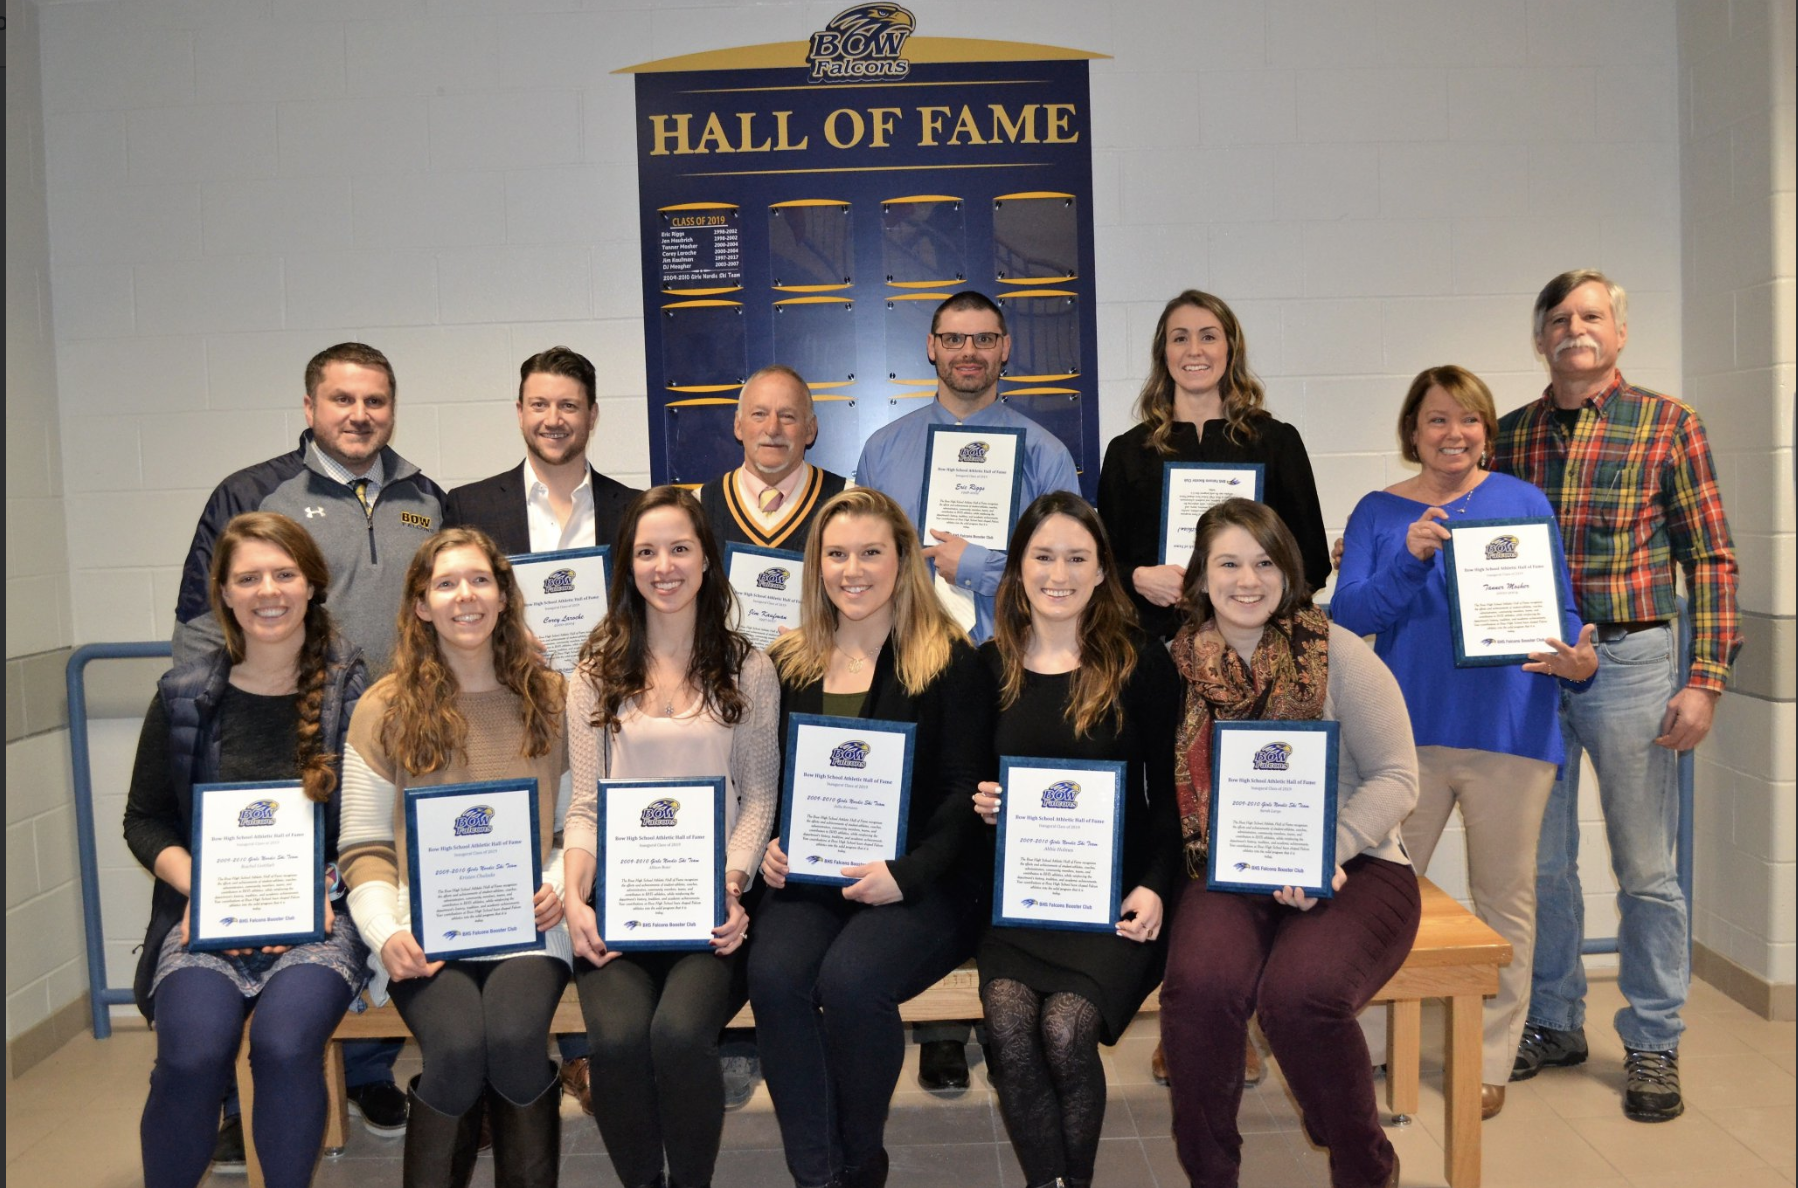 (Back row left to right: Athletic Director Mike Desilets, Corey Laroche, Jim Kaufman, Eric Riggs, Jen Haubrich (Fithian), and the parents of Tanner Mosher)  (Front row left to right: Rachel Gottlieb, Kristen Chulada, Allison Baier, Julia Romano, Abbie Holmes, and Sarah Large)